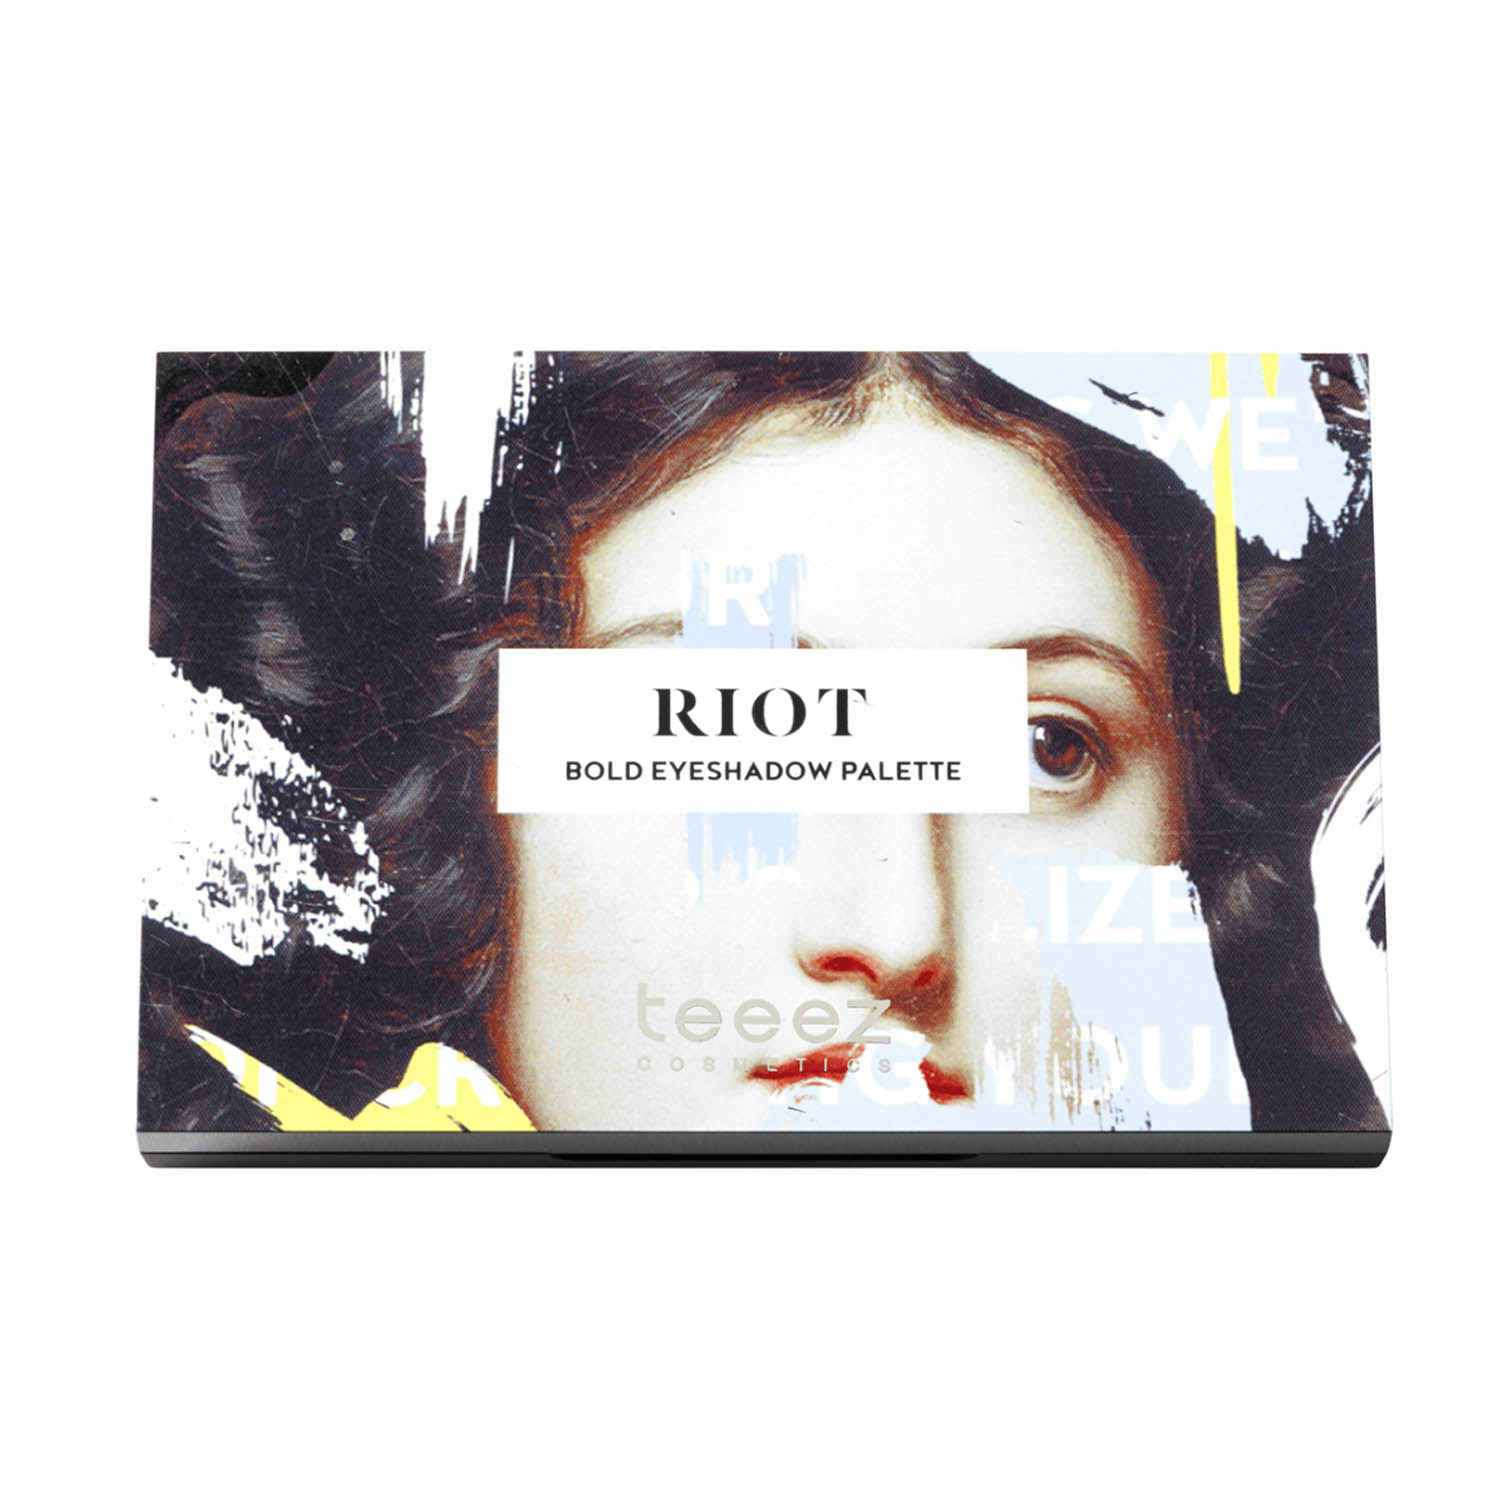 PORTFOLIO_SOCIAL_MEDIA_MARCH4_0035_riot_bold_eyeshadow_palette_box_closededit_1.jpg